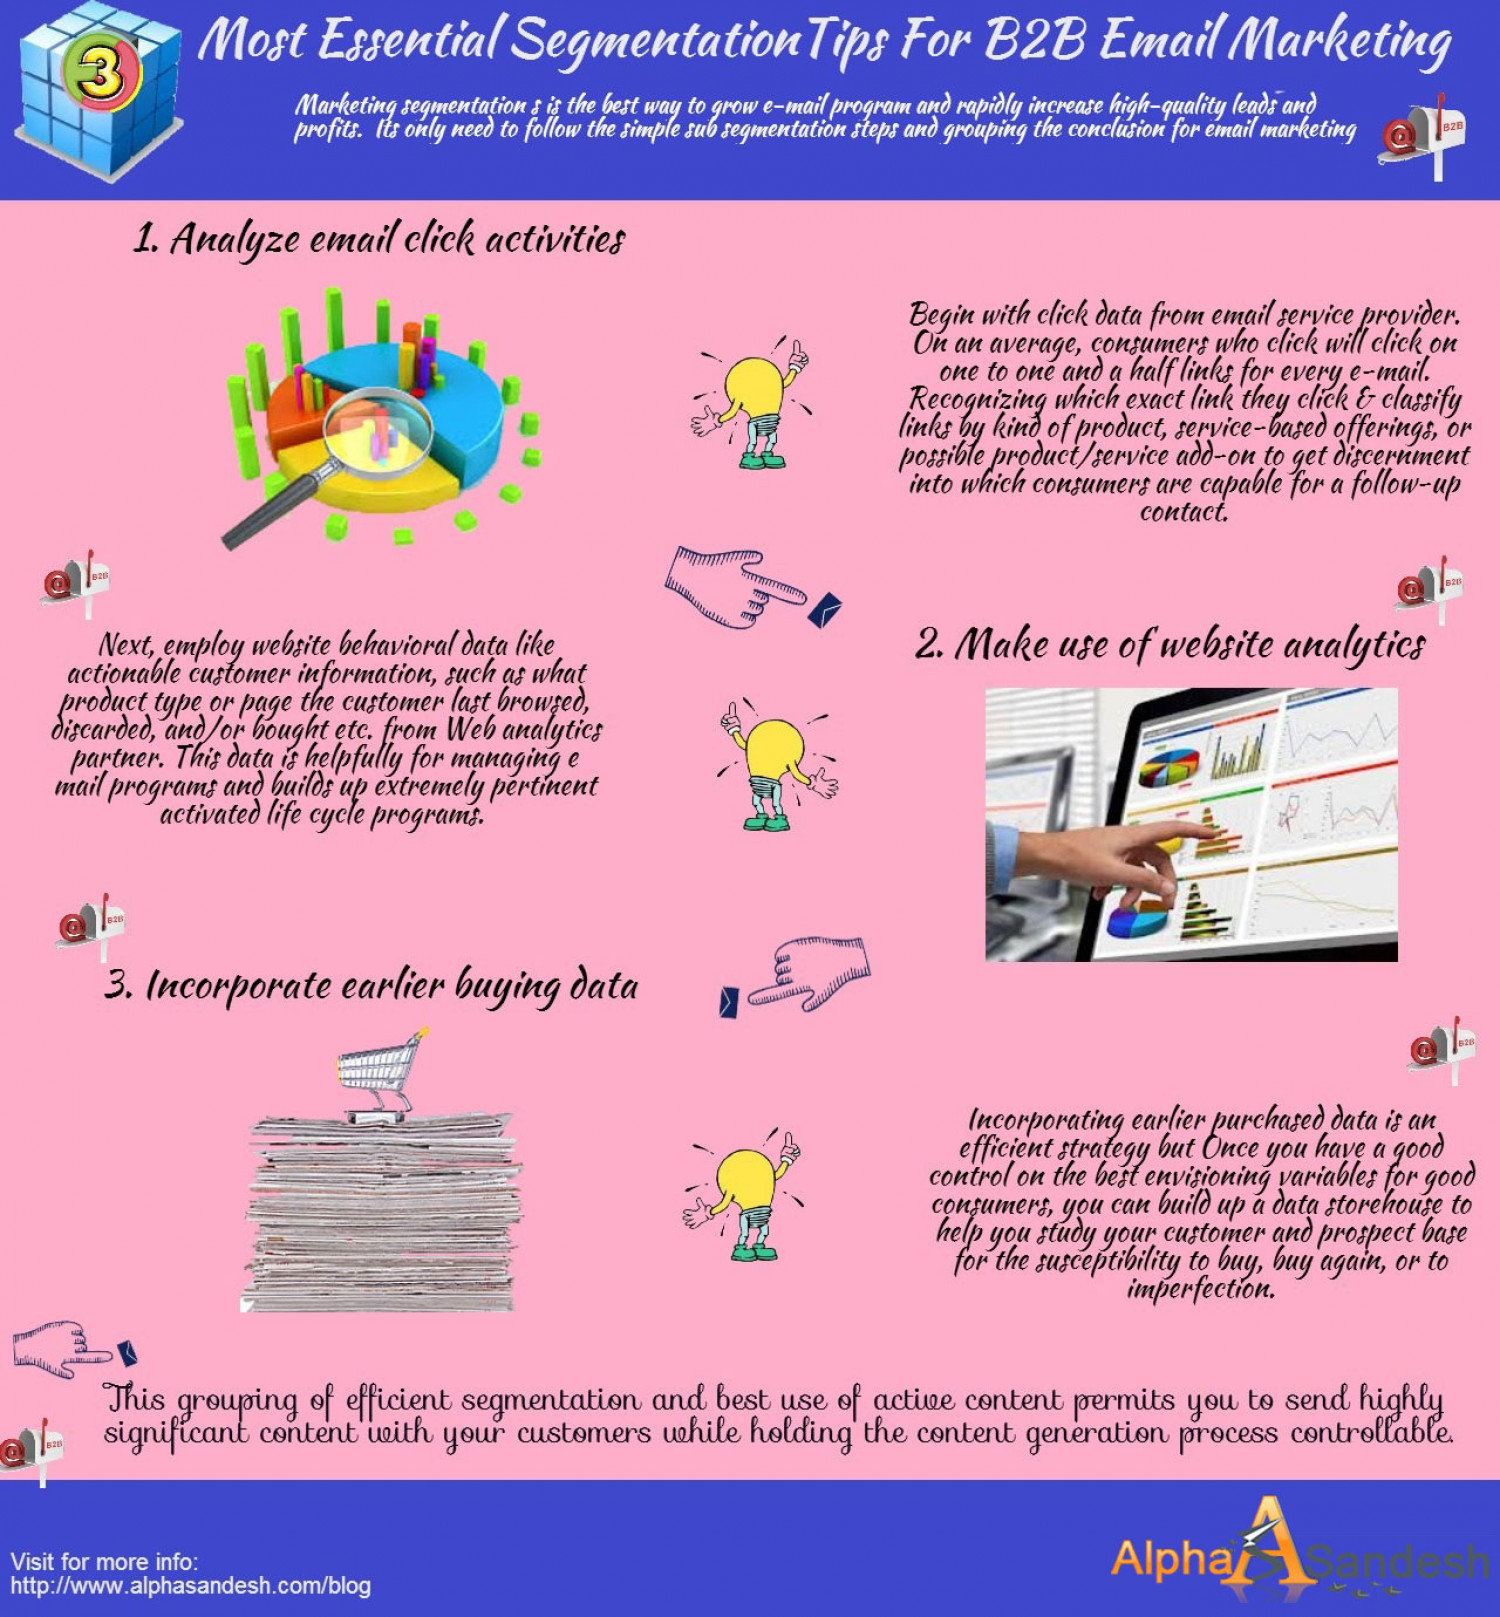 3 Most Essential Segmentation Tips For B2B Email Marketing Infographic